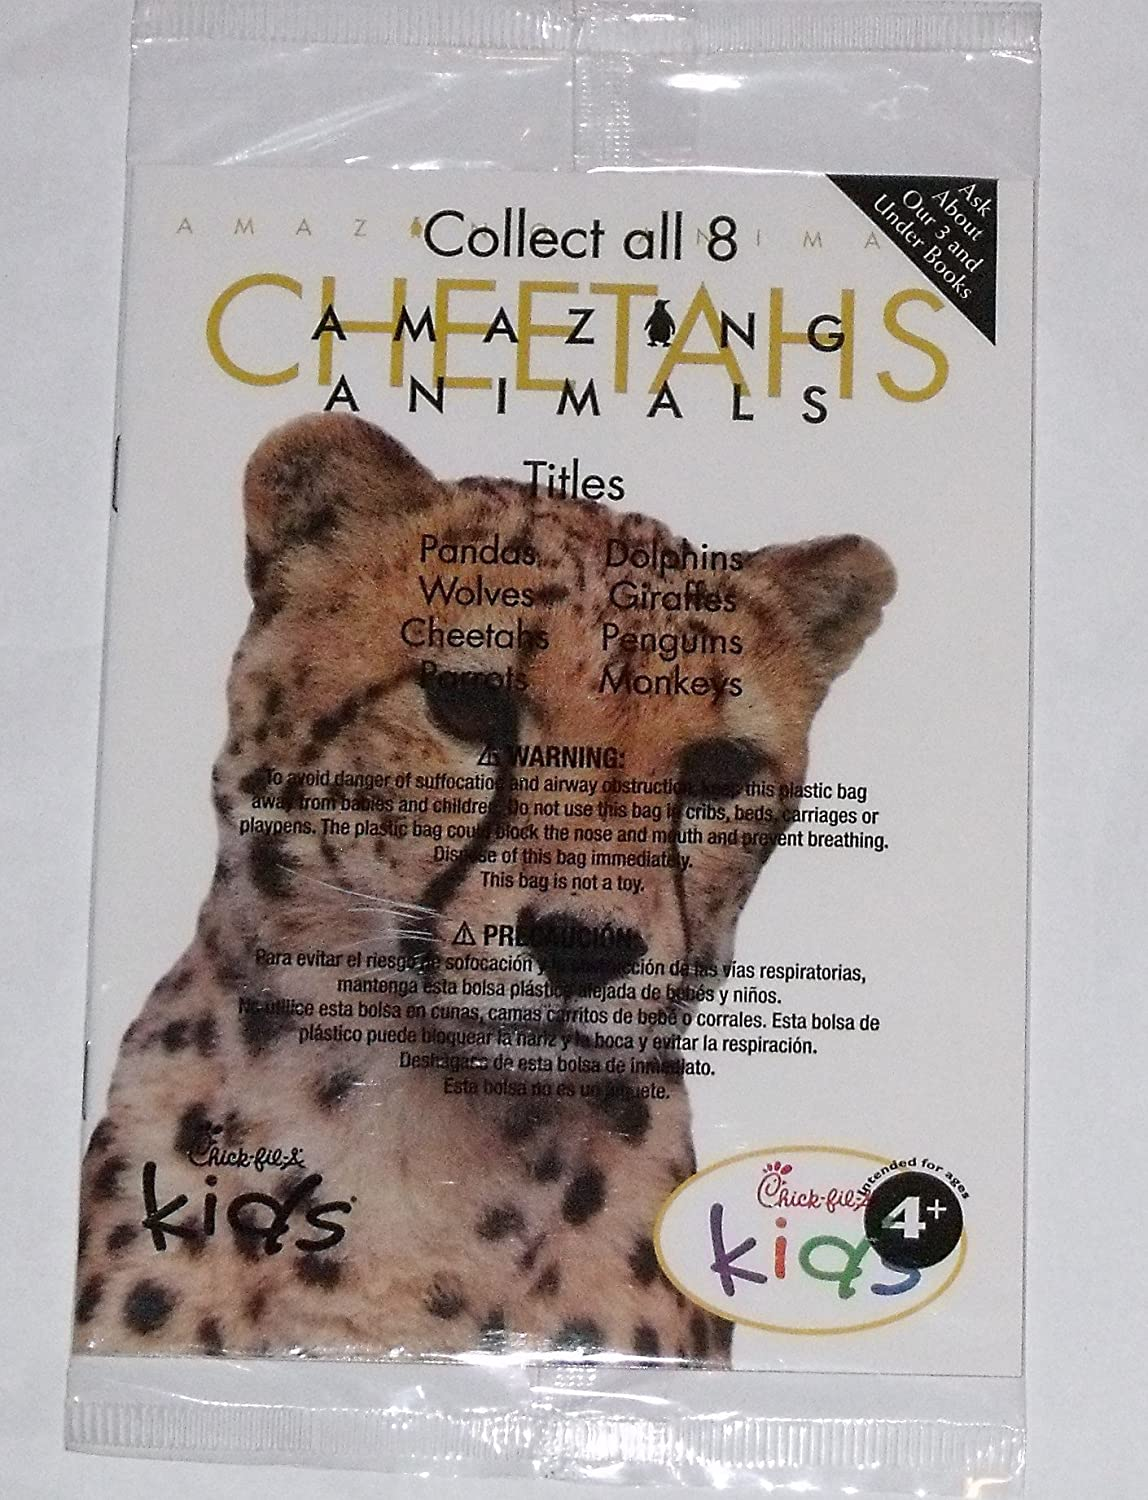 Amazon.com : Chick-fil-a Amazing Animals Book - Cheetahs : Everything Else